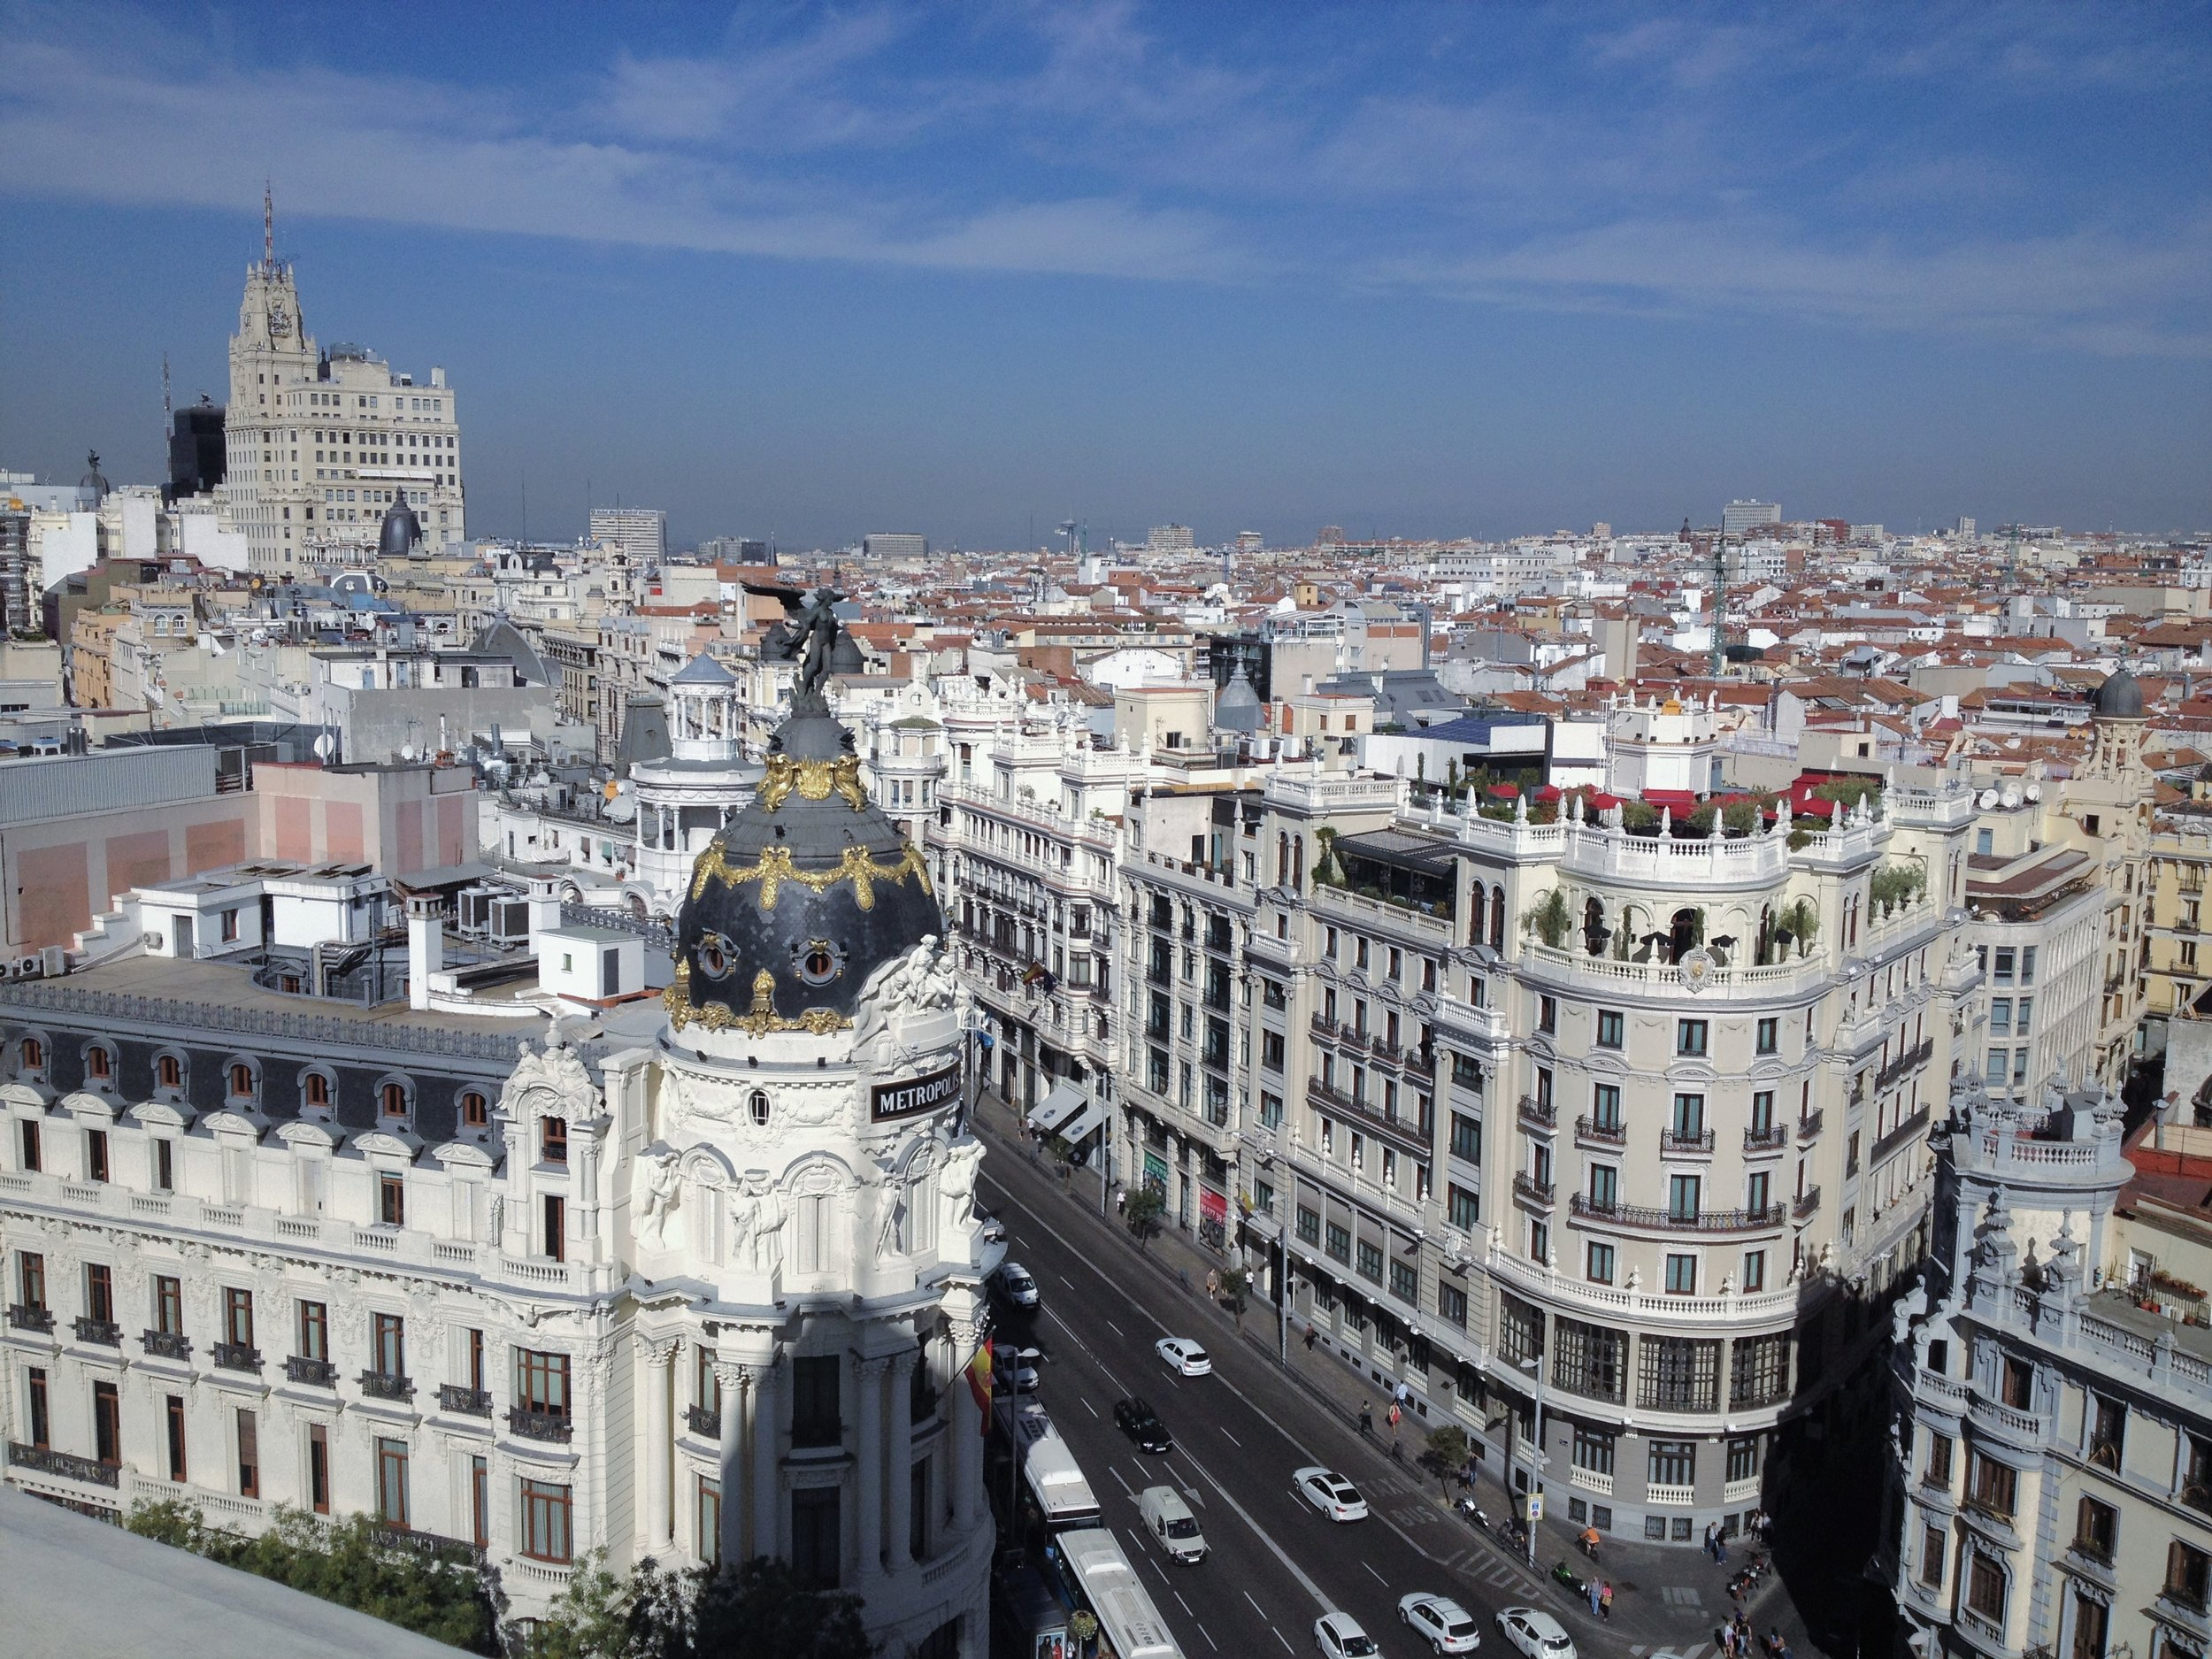 Skyline from the top of Círculo de Bellas Artes, Madrid